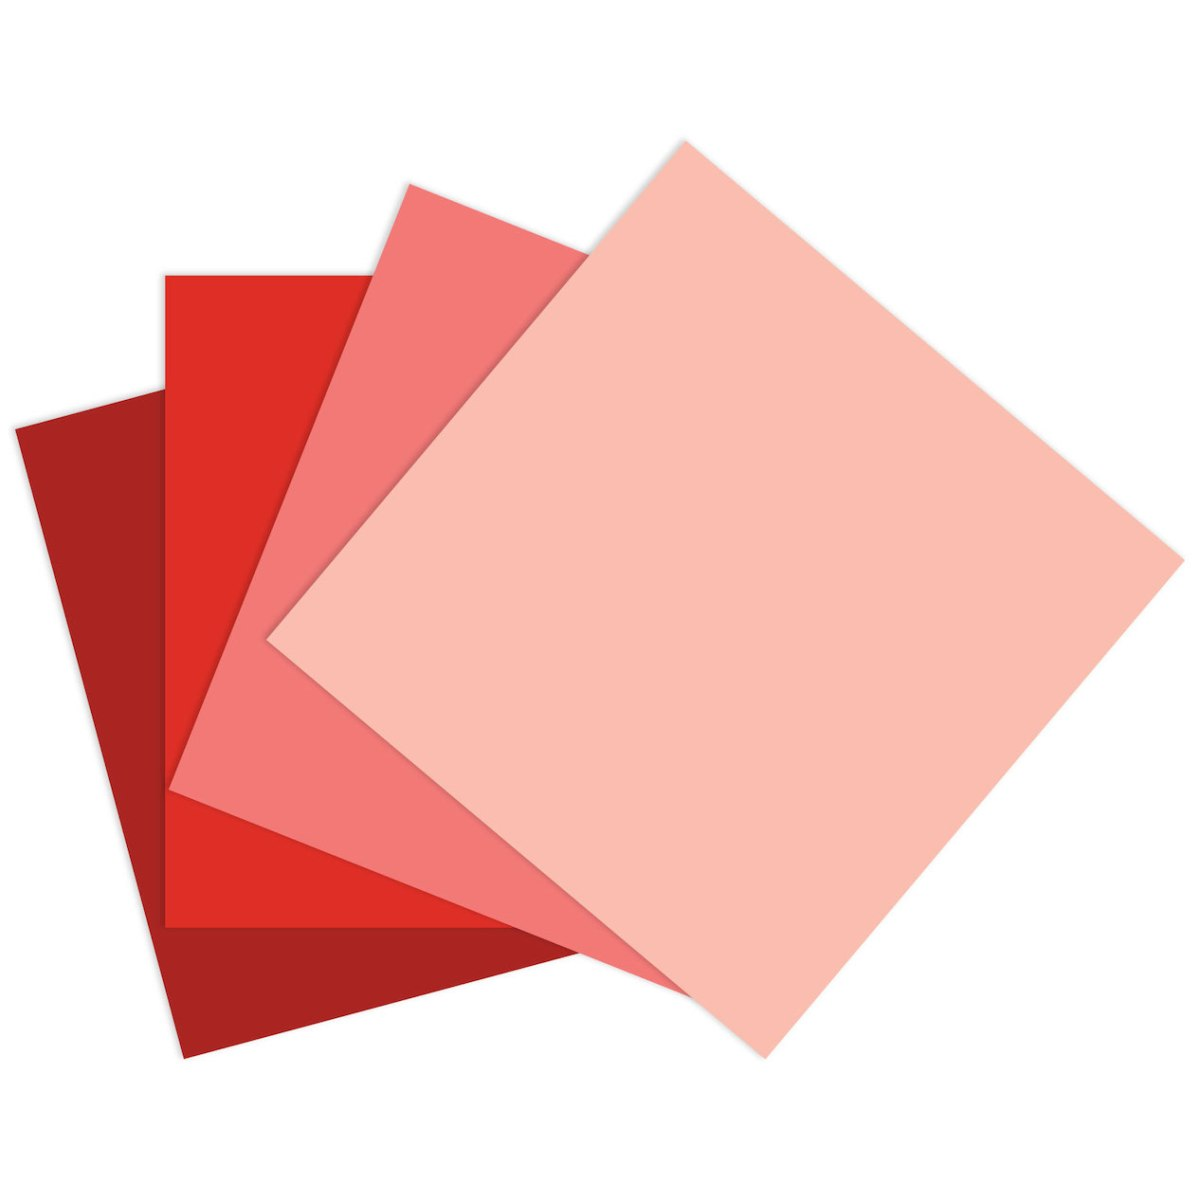 Cardstock Carnival #ctmh #closetomyheart #cardstock #exclusivecolorpalette #exclusivecolourpalatte #ctmhcolors #cmthcolours #red #ruby #candyapple #smoothie #peach